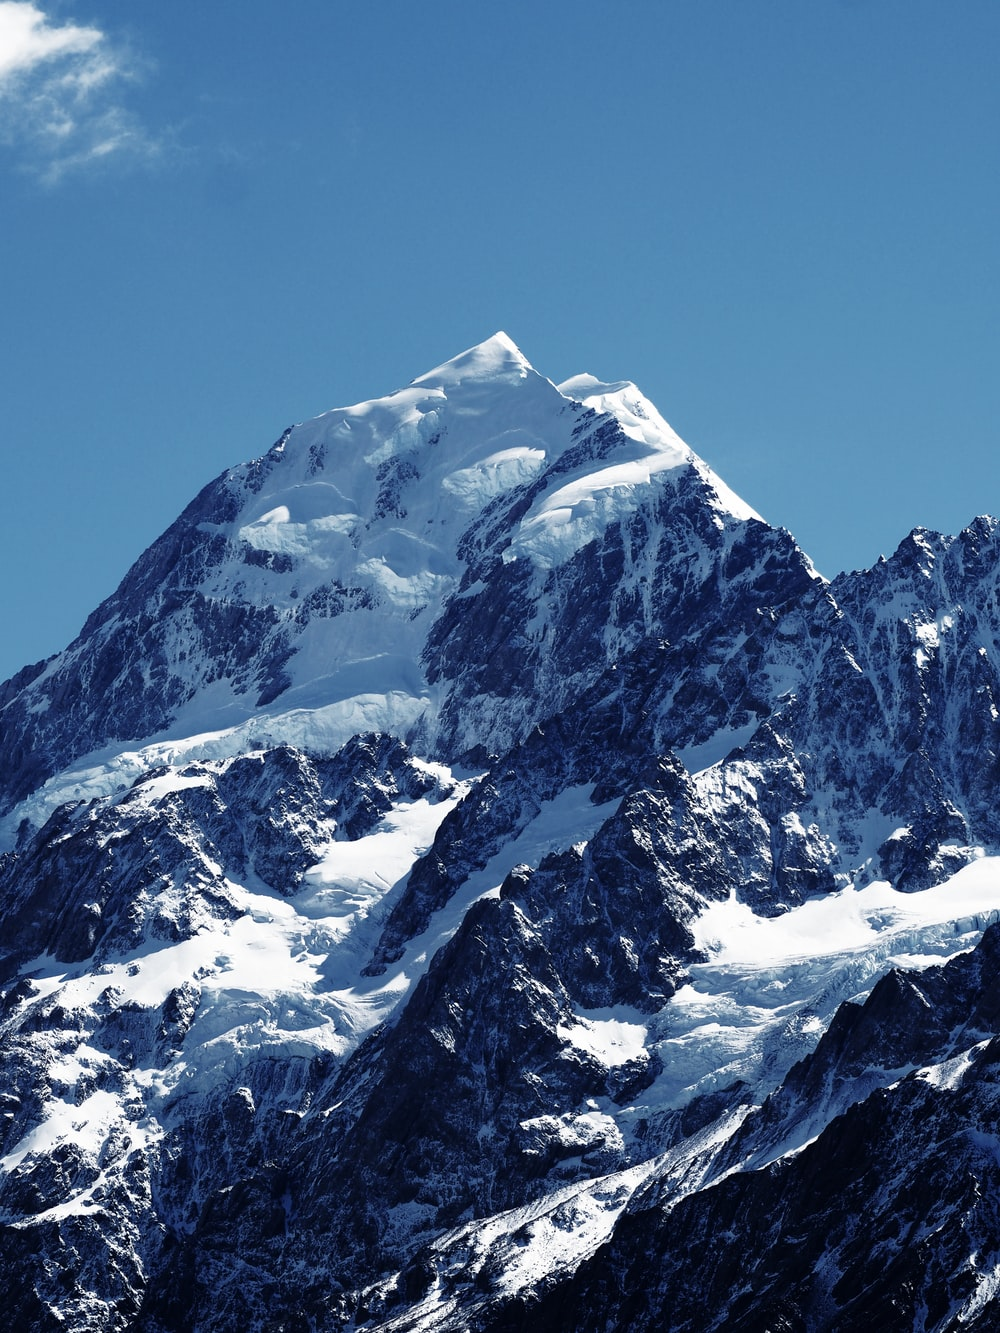 snowy mountain under a calm blue sky during daytime